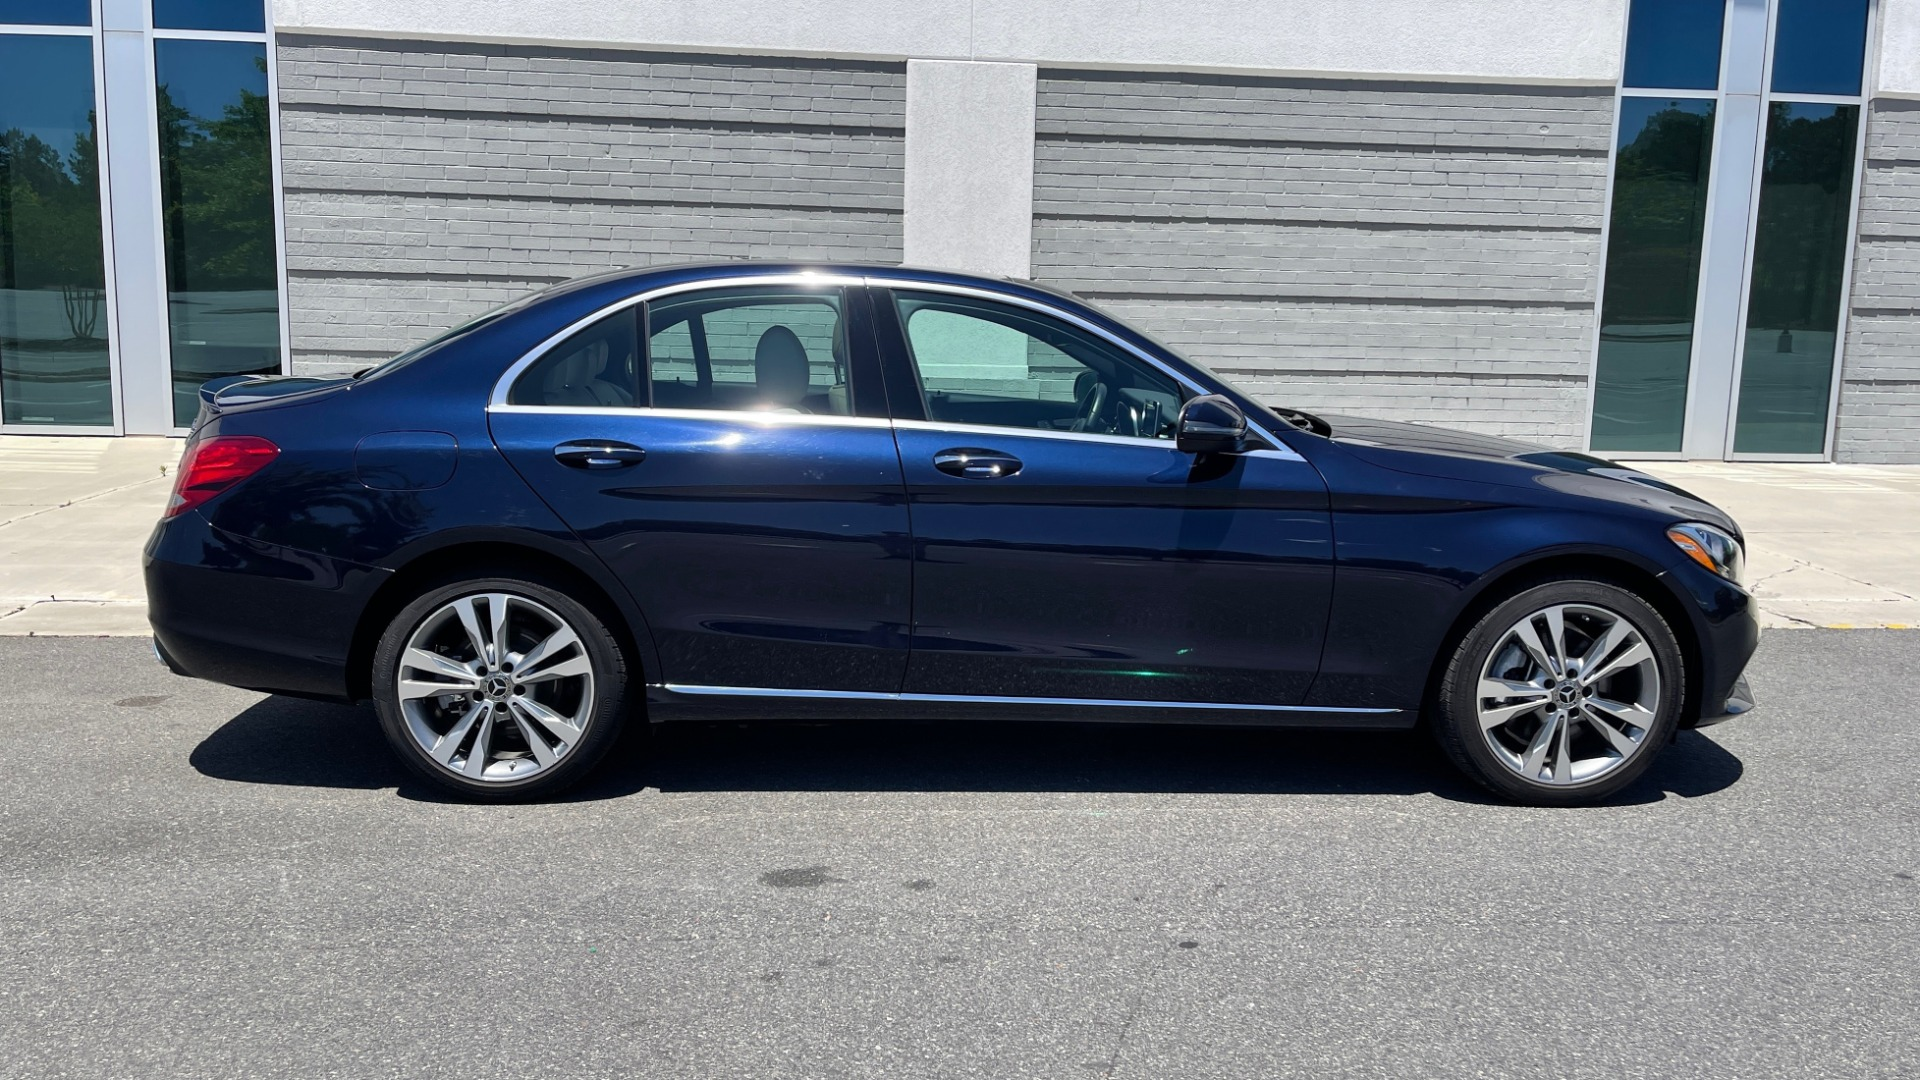 Used 2018 Mercedes-Benz C-CLASS C 300 PREMIUM / KEYLESS-GO / PANO-ROOF / BURMESTER / REARVIEW for sale $29,495 at Formula Imports in Charlotte NC 28227 6